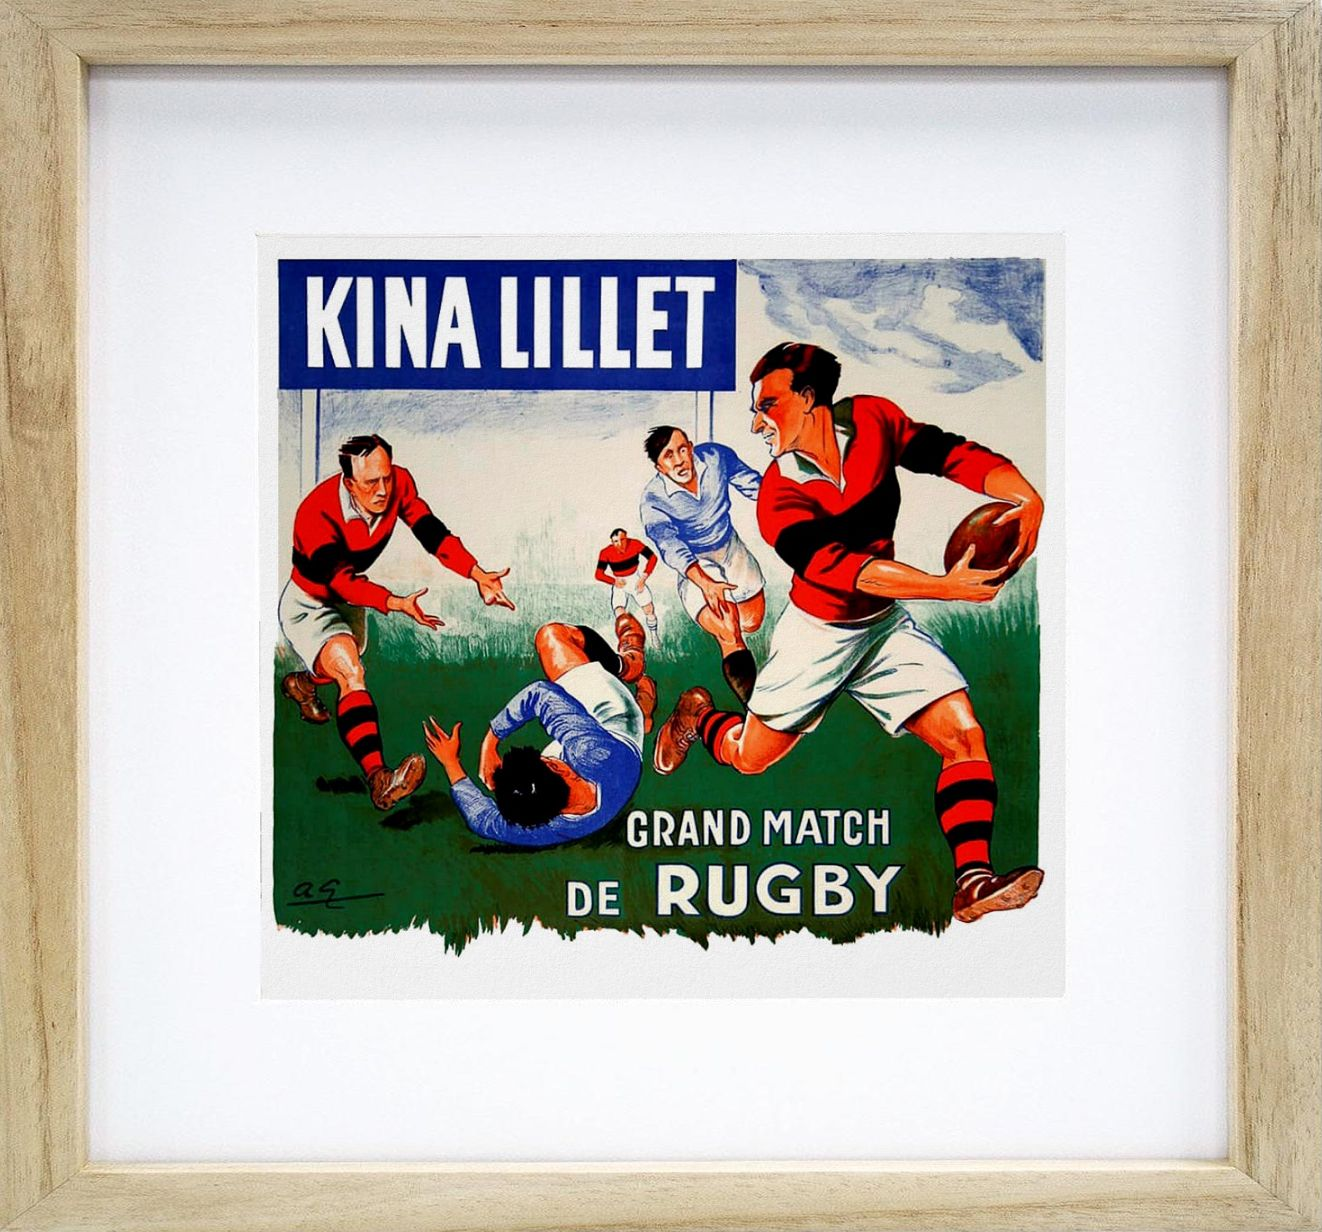 Grand Match De Rugby Vintage Rugby Print Zazzle Com Rugby Art Poster Prints Rugby Vintage